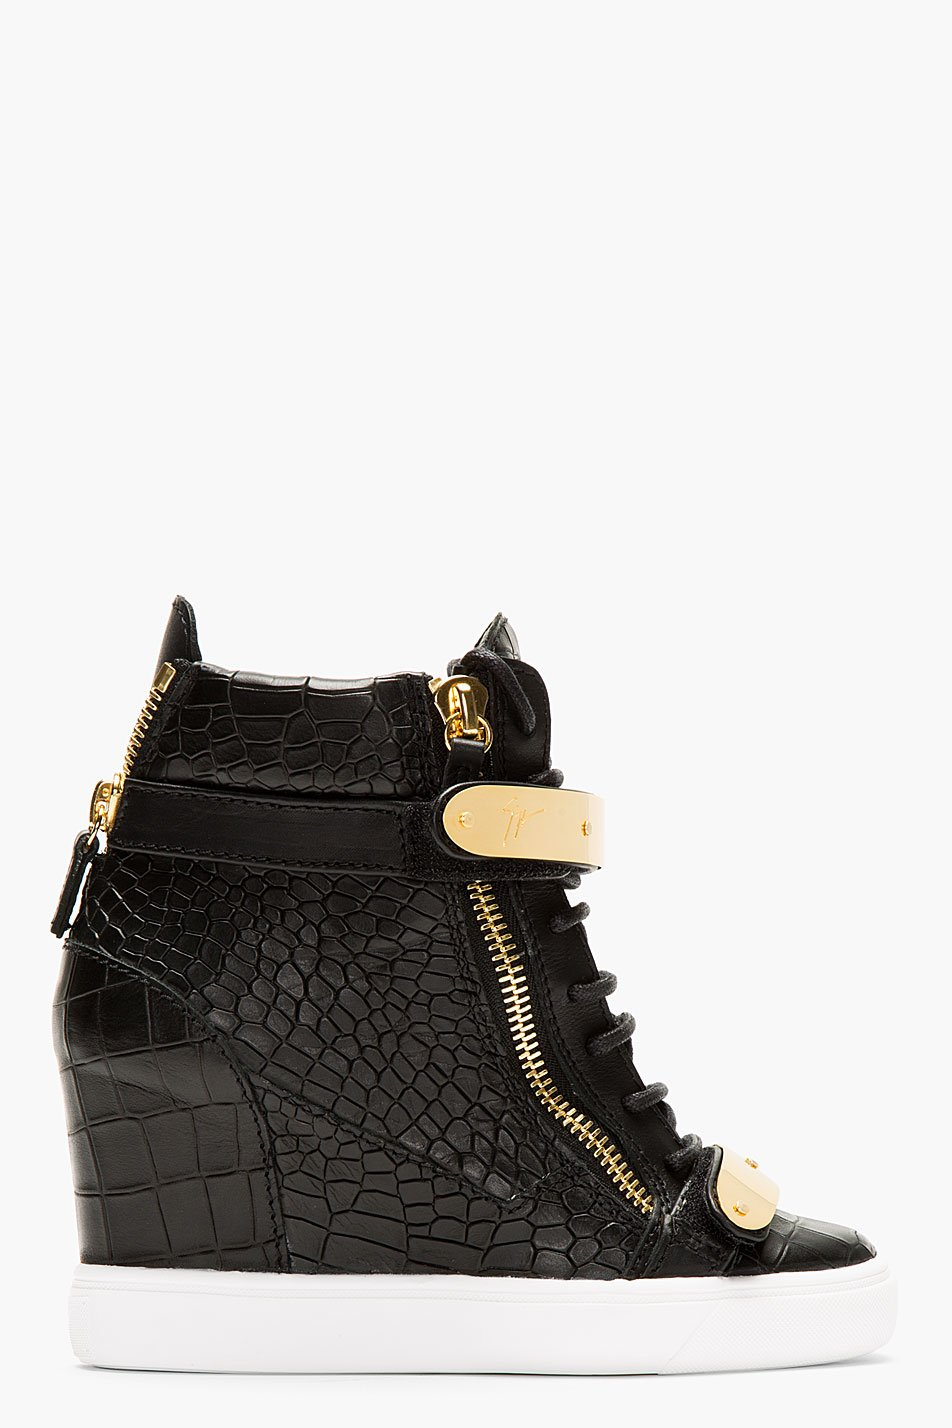 Giuseppe zanotti black croc_embossed loren z75 wedge sneakers